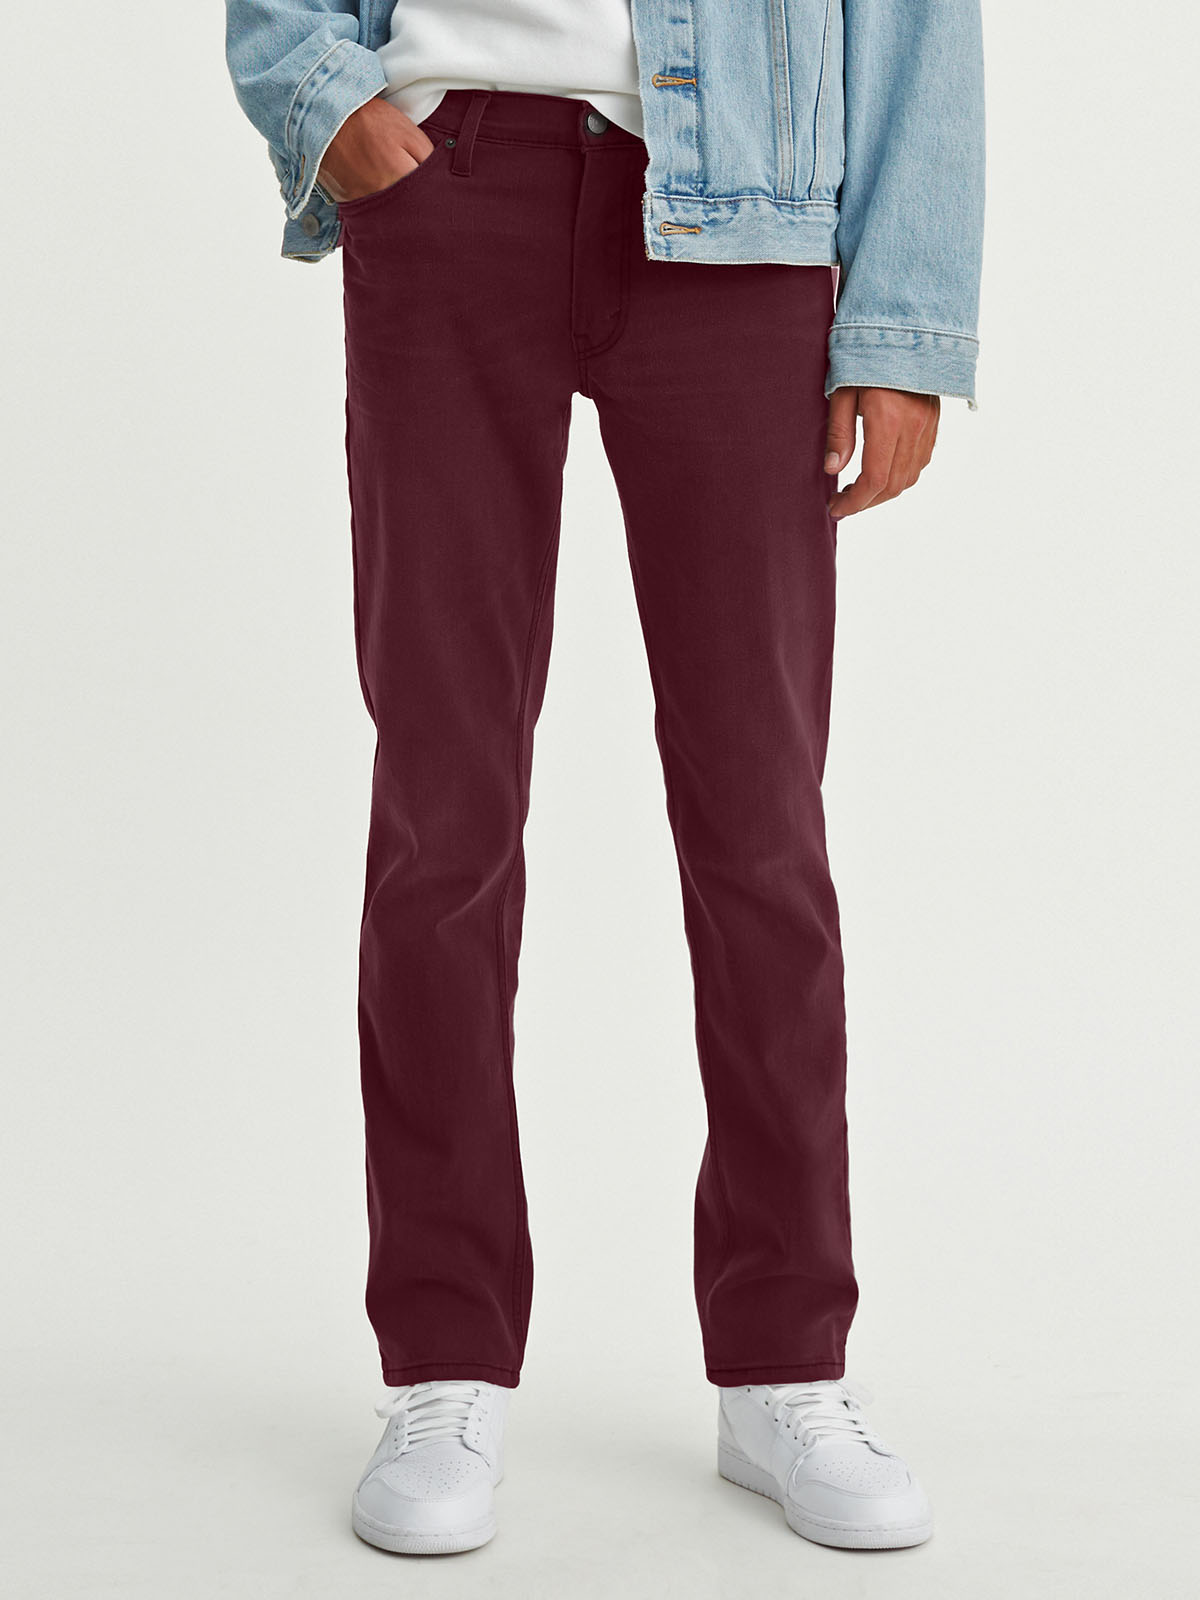 Levi's 511 slim pantalons texans de gavardina d'home 04511-4002 color bordeus